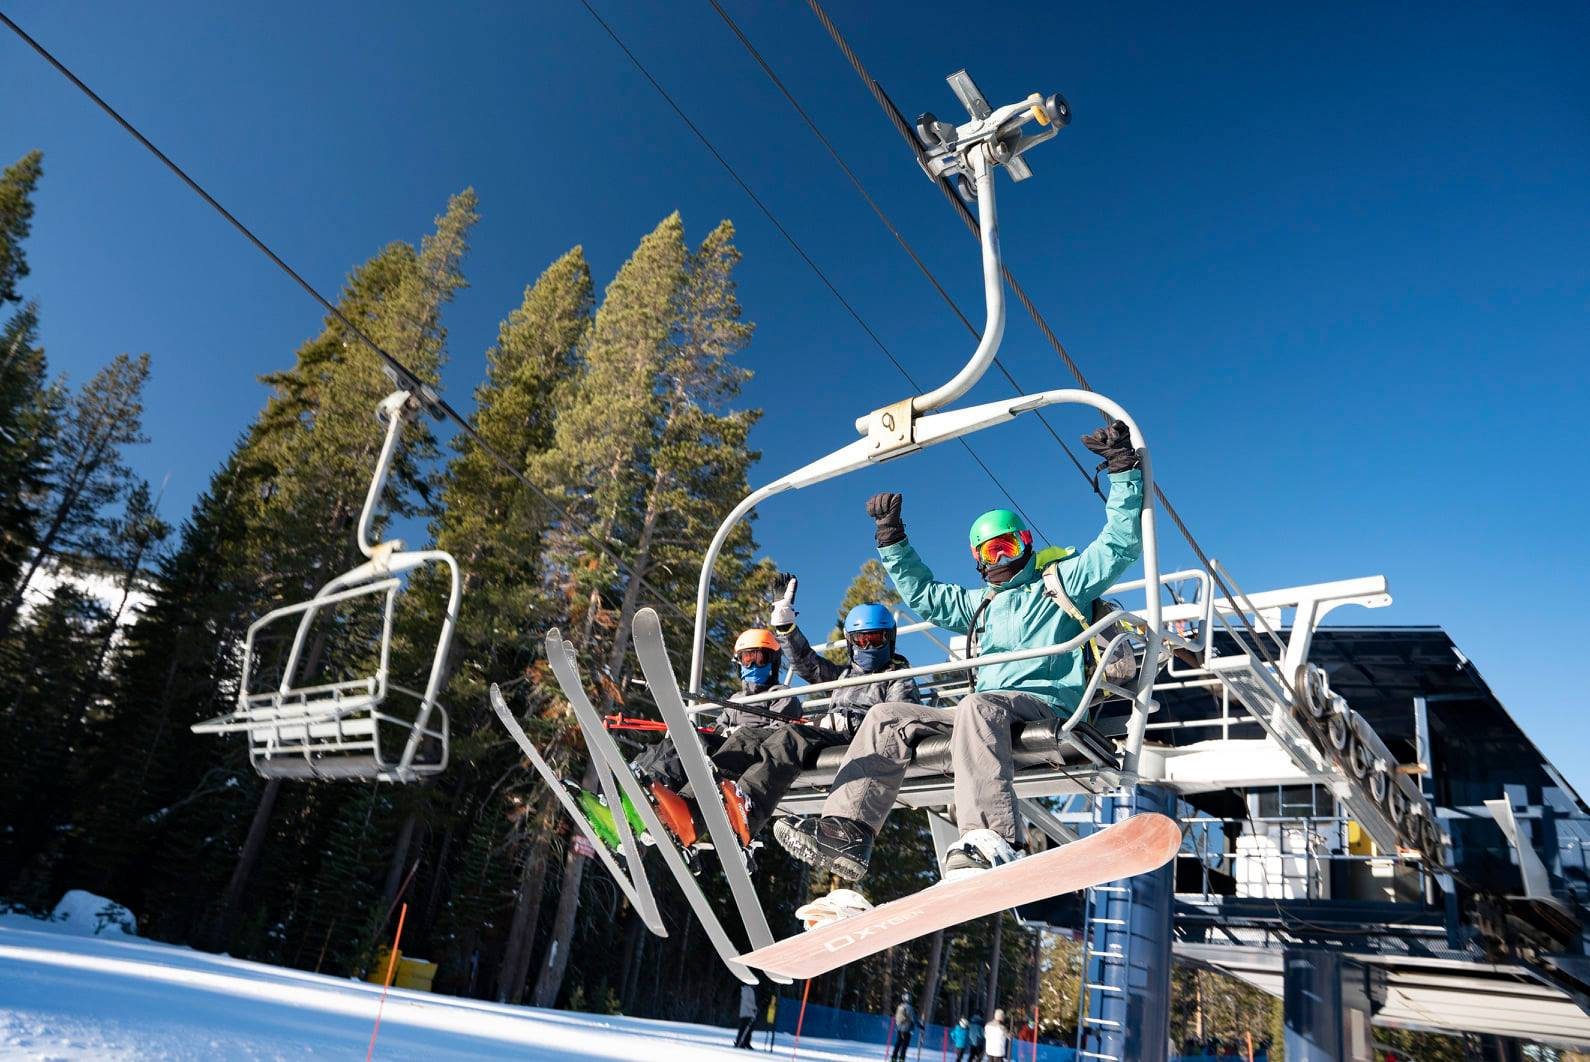 Image of skier and snowboarder on the chairlift at Sugar Bowl Resort